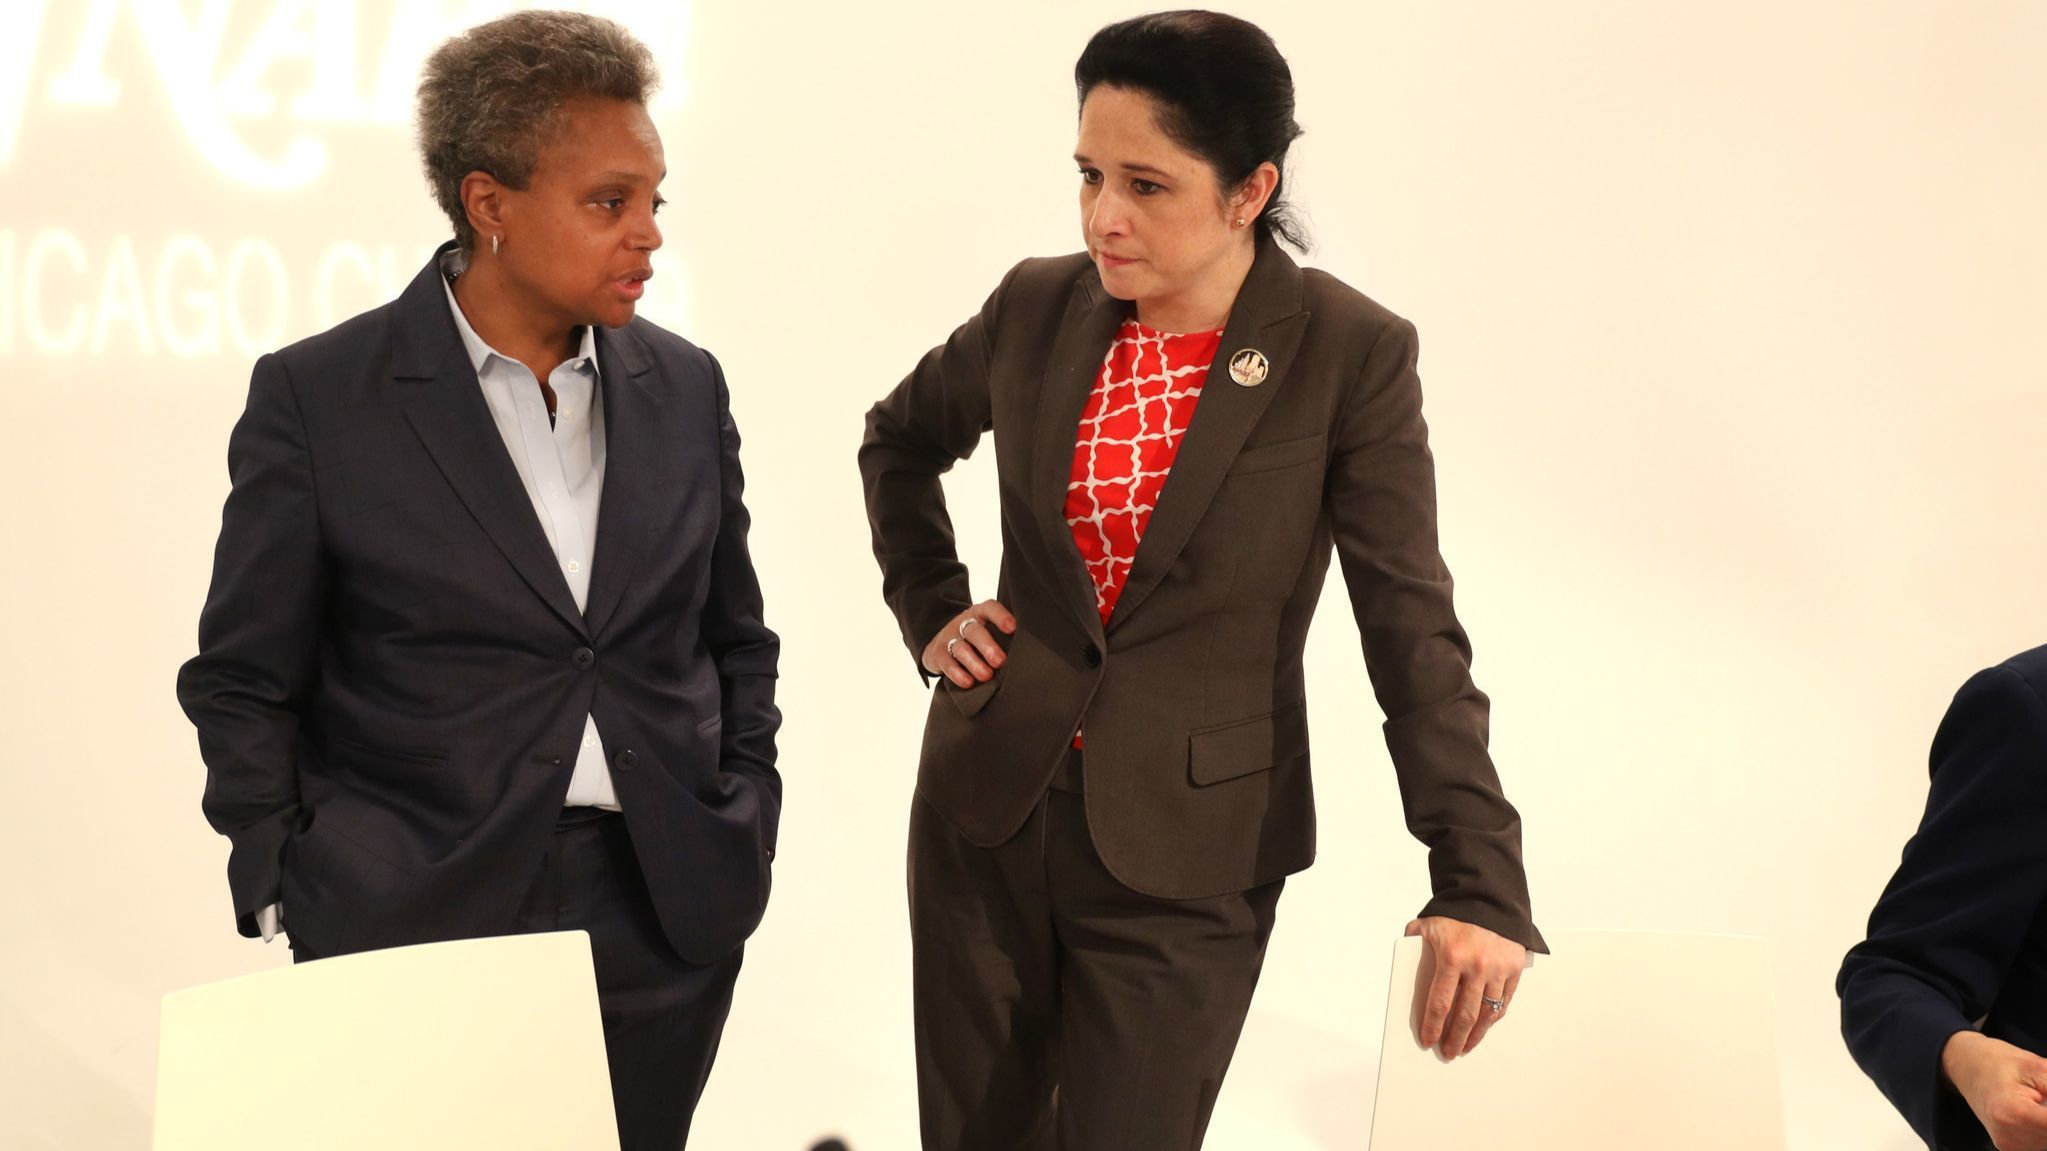 Comptroller Susana Mendoza backs former rival Lori Lightfoot in Chicago mayor's race